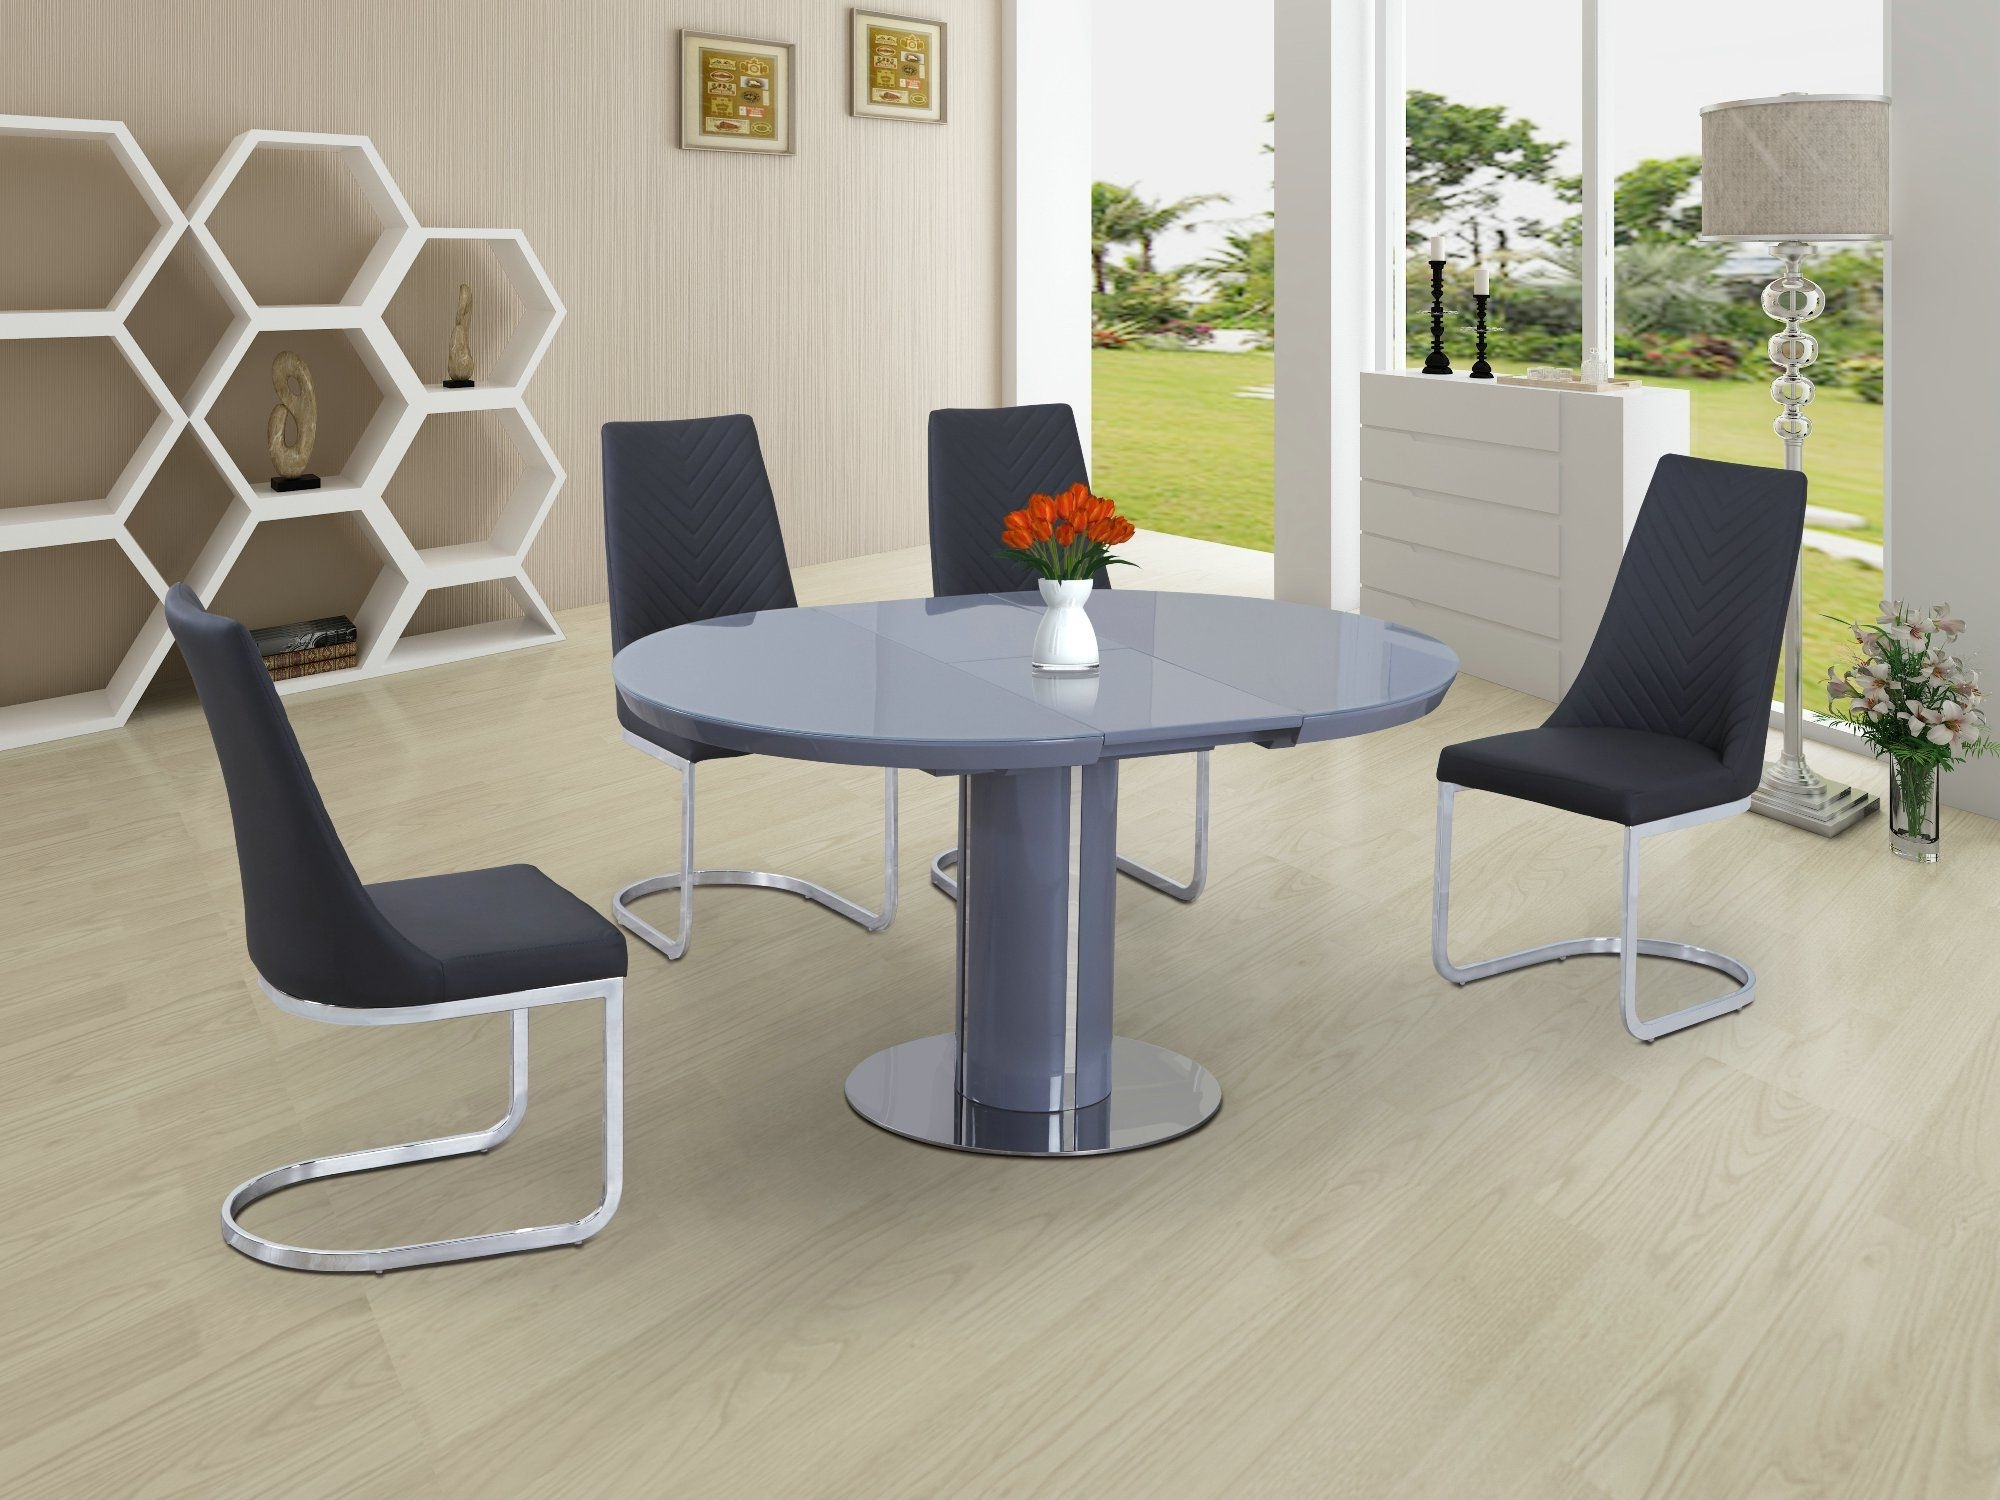 Eclipse Round / Oval Gloss & Glass Extending 110 To 145 Cm Dining Table –  Grey In Most Recently Released Glass Extending Dining Tables (View 8 of 25)